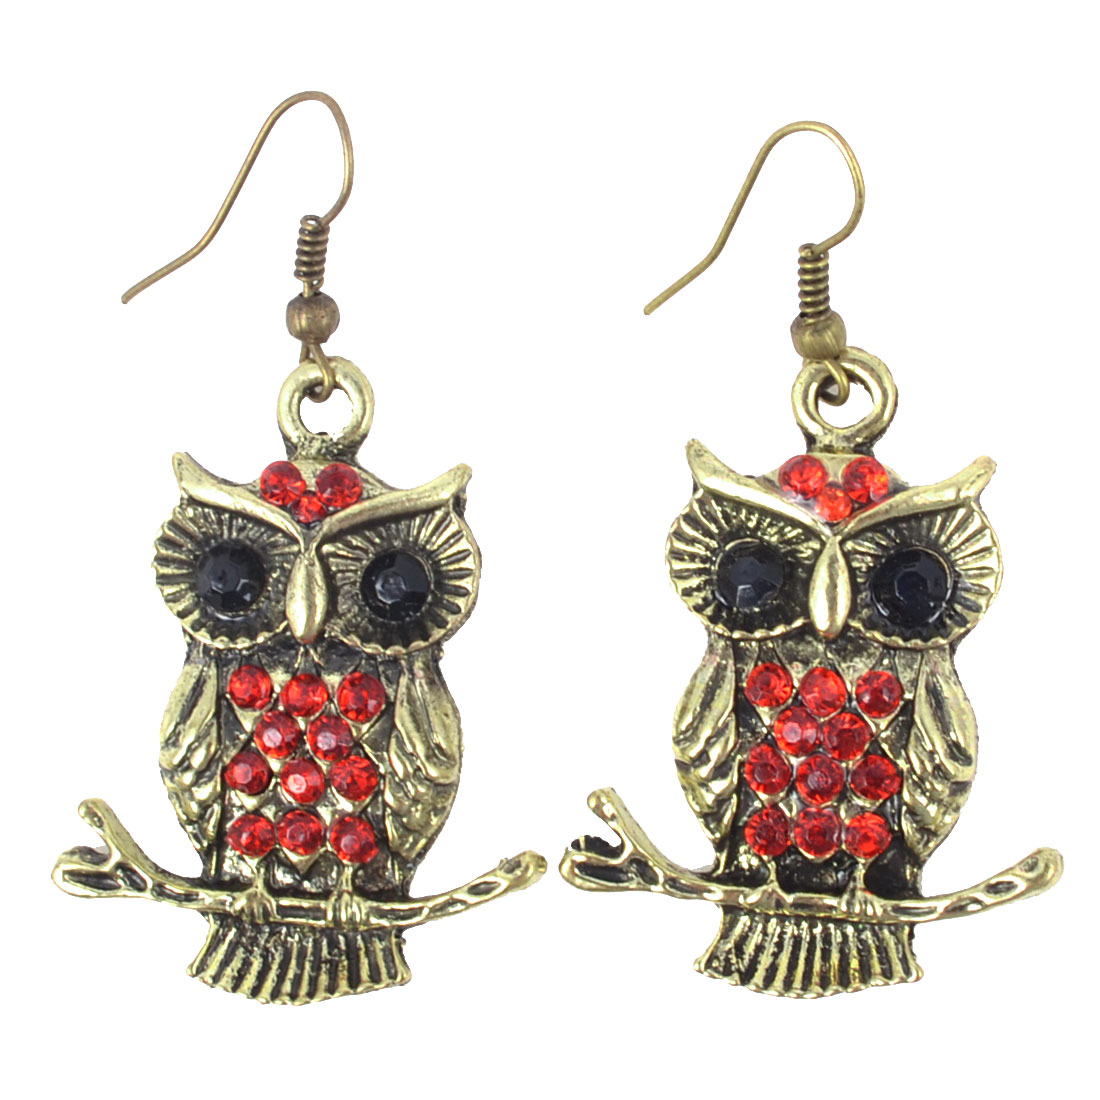 Woman Retro Style Red Beads Inlaid Metal Owl Fish Hook Earrings Bronze Tone Pair